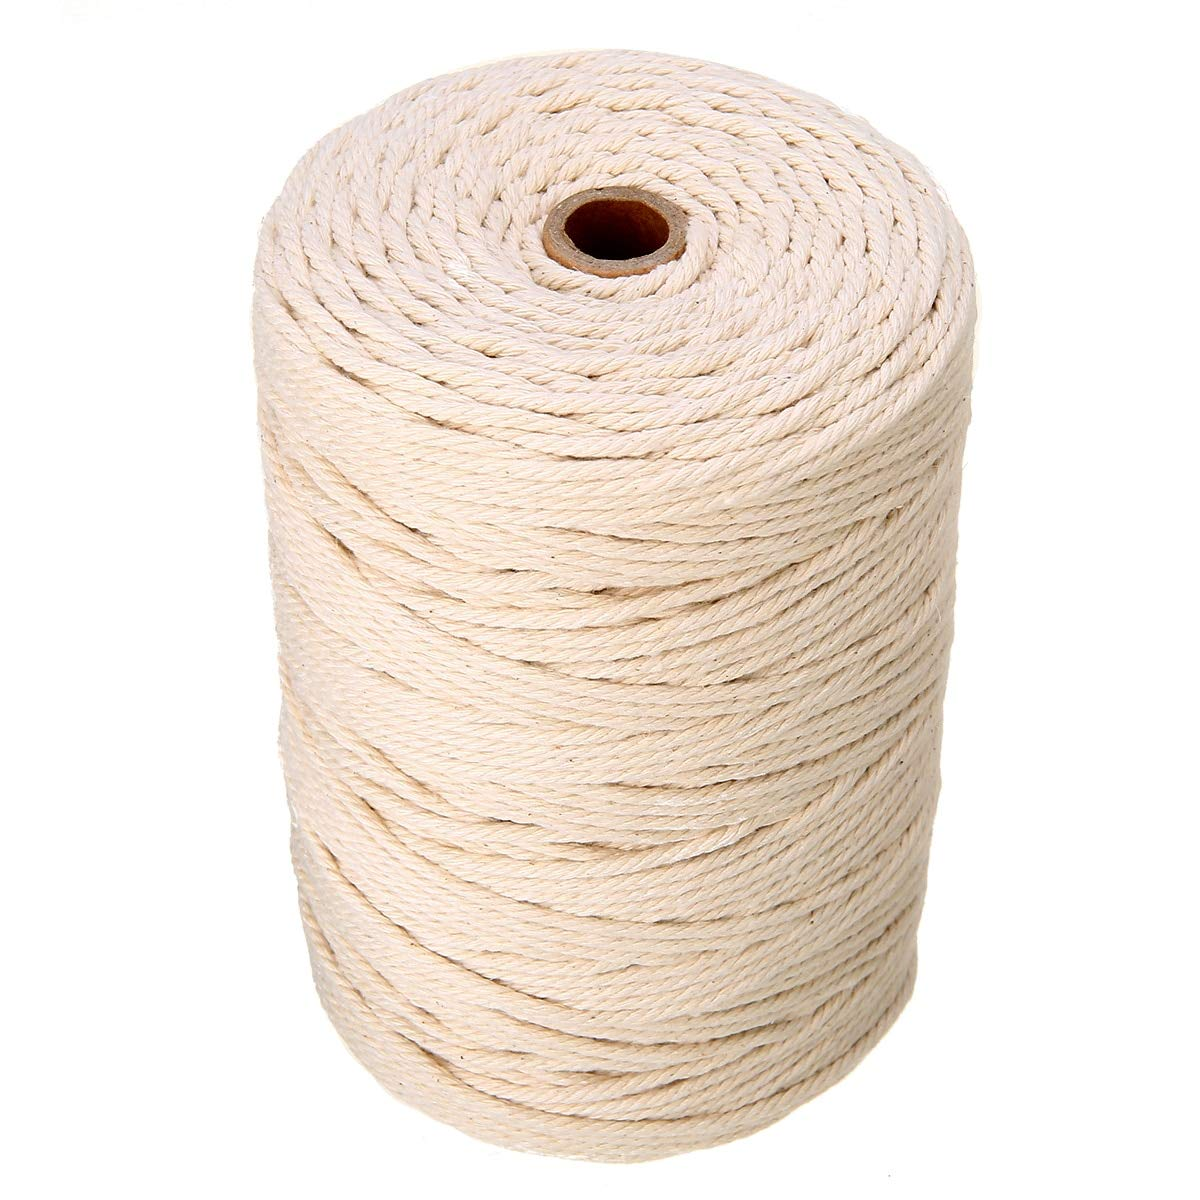 MONICO 1 Roll 3mm Beige Cotton Twist Cord 220m Length Rope Artisan Craft Macrame String for DIY Craftwork